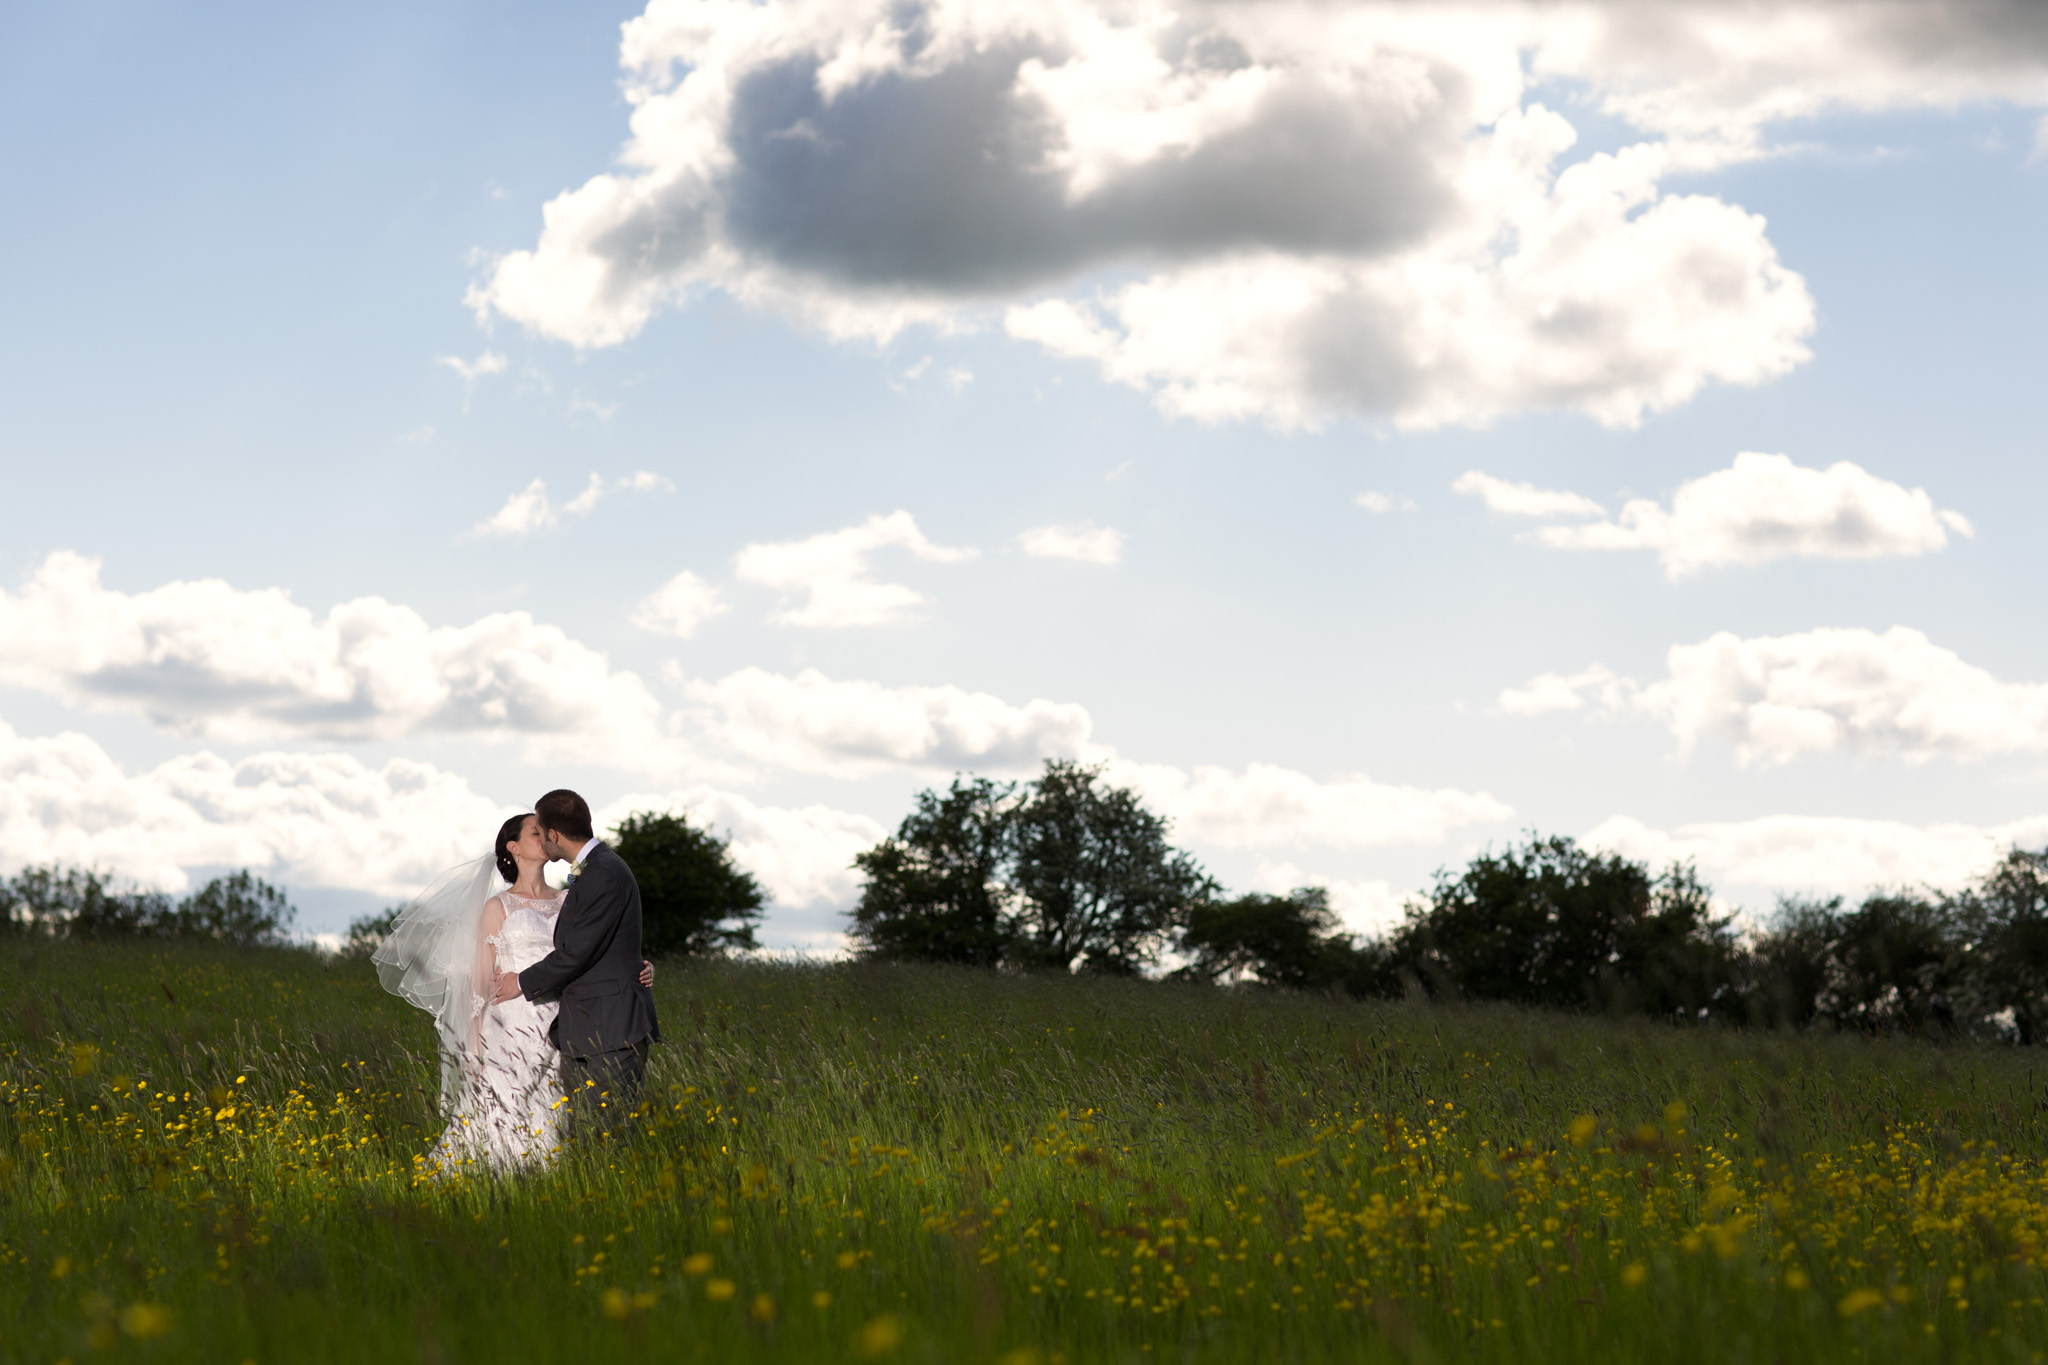 Mark_Barnes_Northern_Ireland_Wedding_Photography_Jack_and_Claire-30.jpg